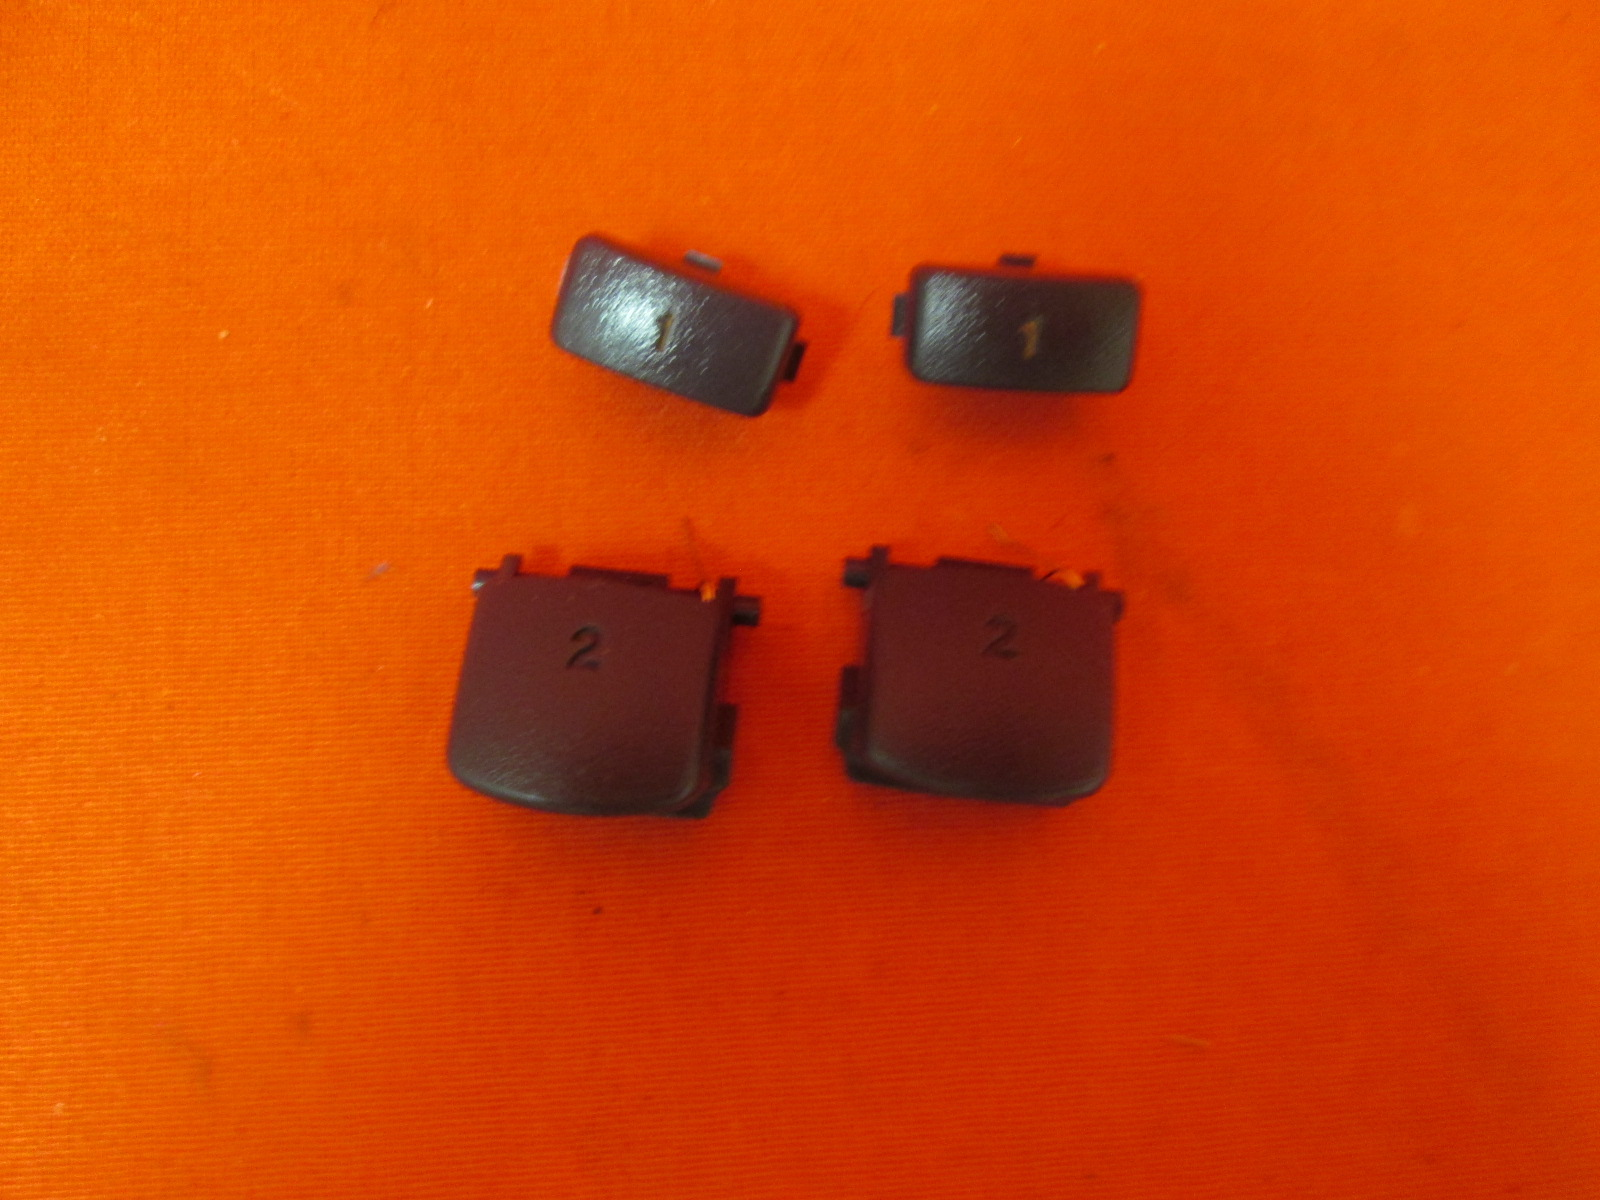 Replacement Sony OEM L1 R1 L2 R2 Bumper Trigger Buttons And Springs